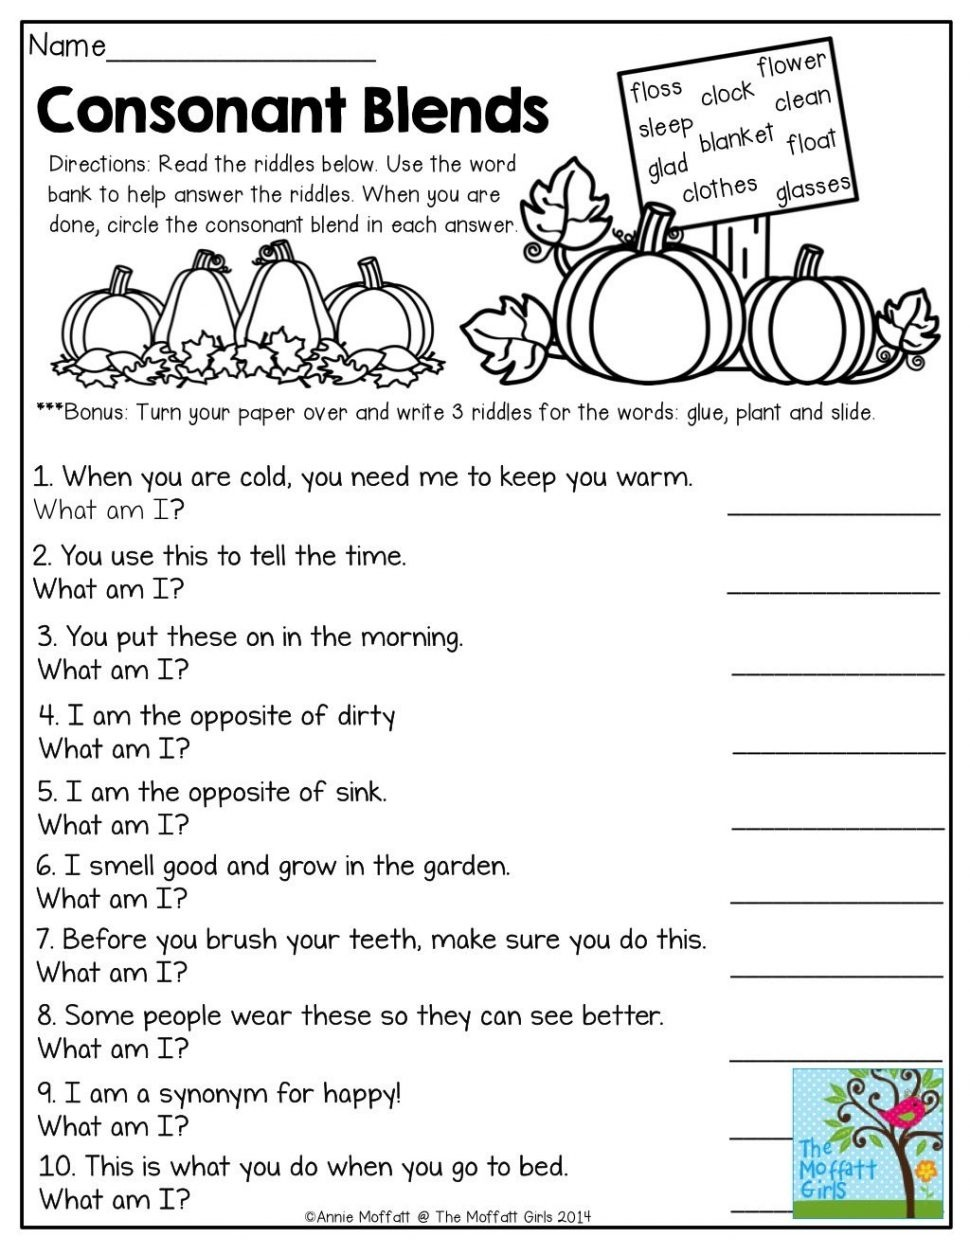 Worksheet : Collection Blends Worksheet For Grade Them And Phonics - Free Printable Worksheets On Africa